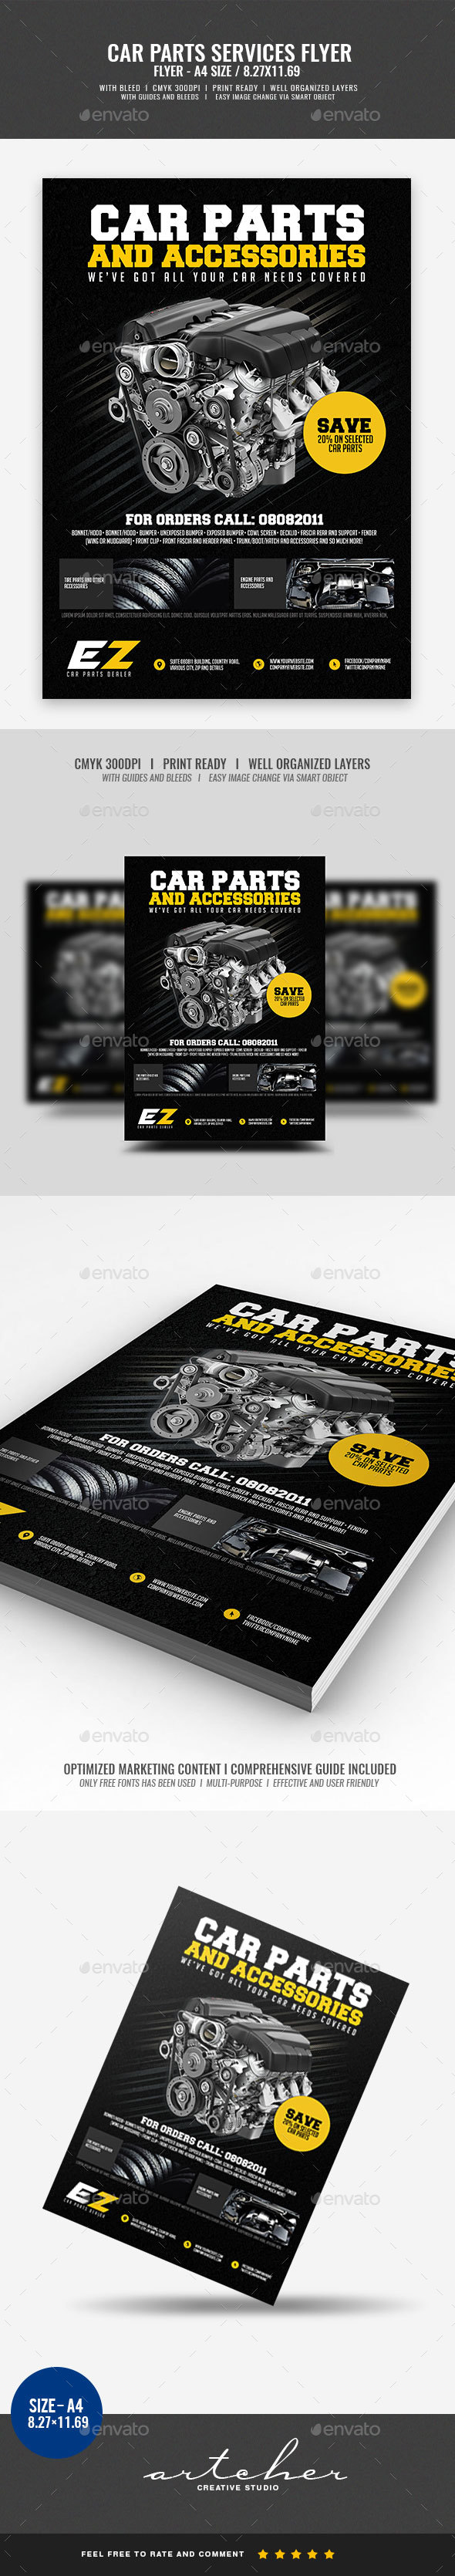 Car Parts and Accessories Flyer v2 - Commerce Flyers